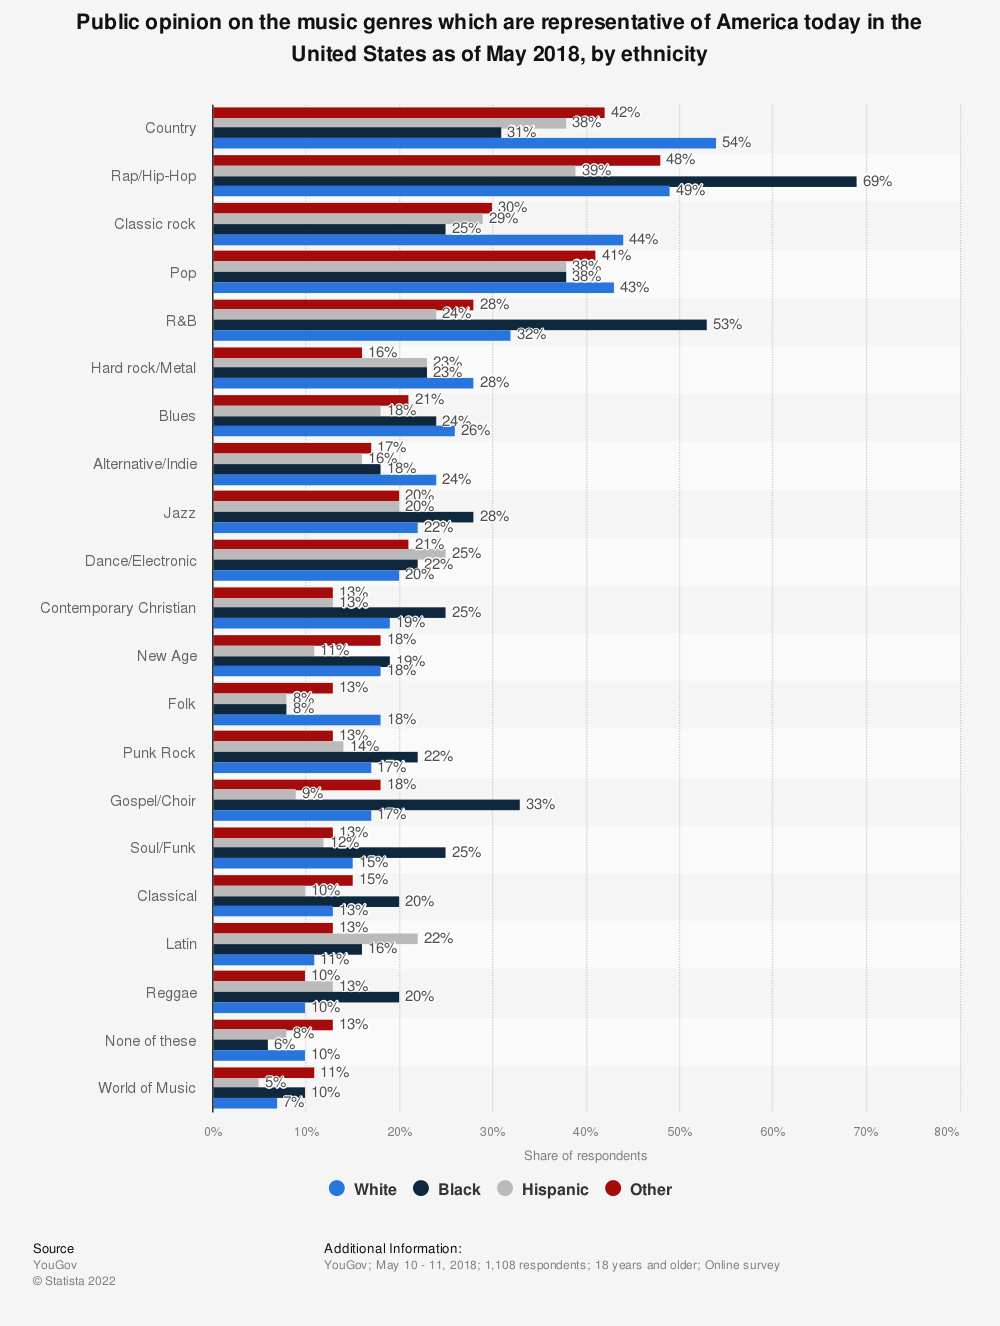 Statistic: Public opinion on the music genres which are representative of America today in the United States as of May 2018, by ethnicity | Statista